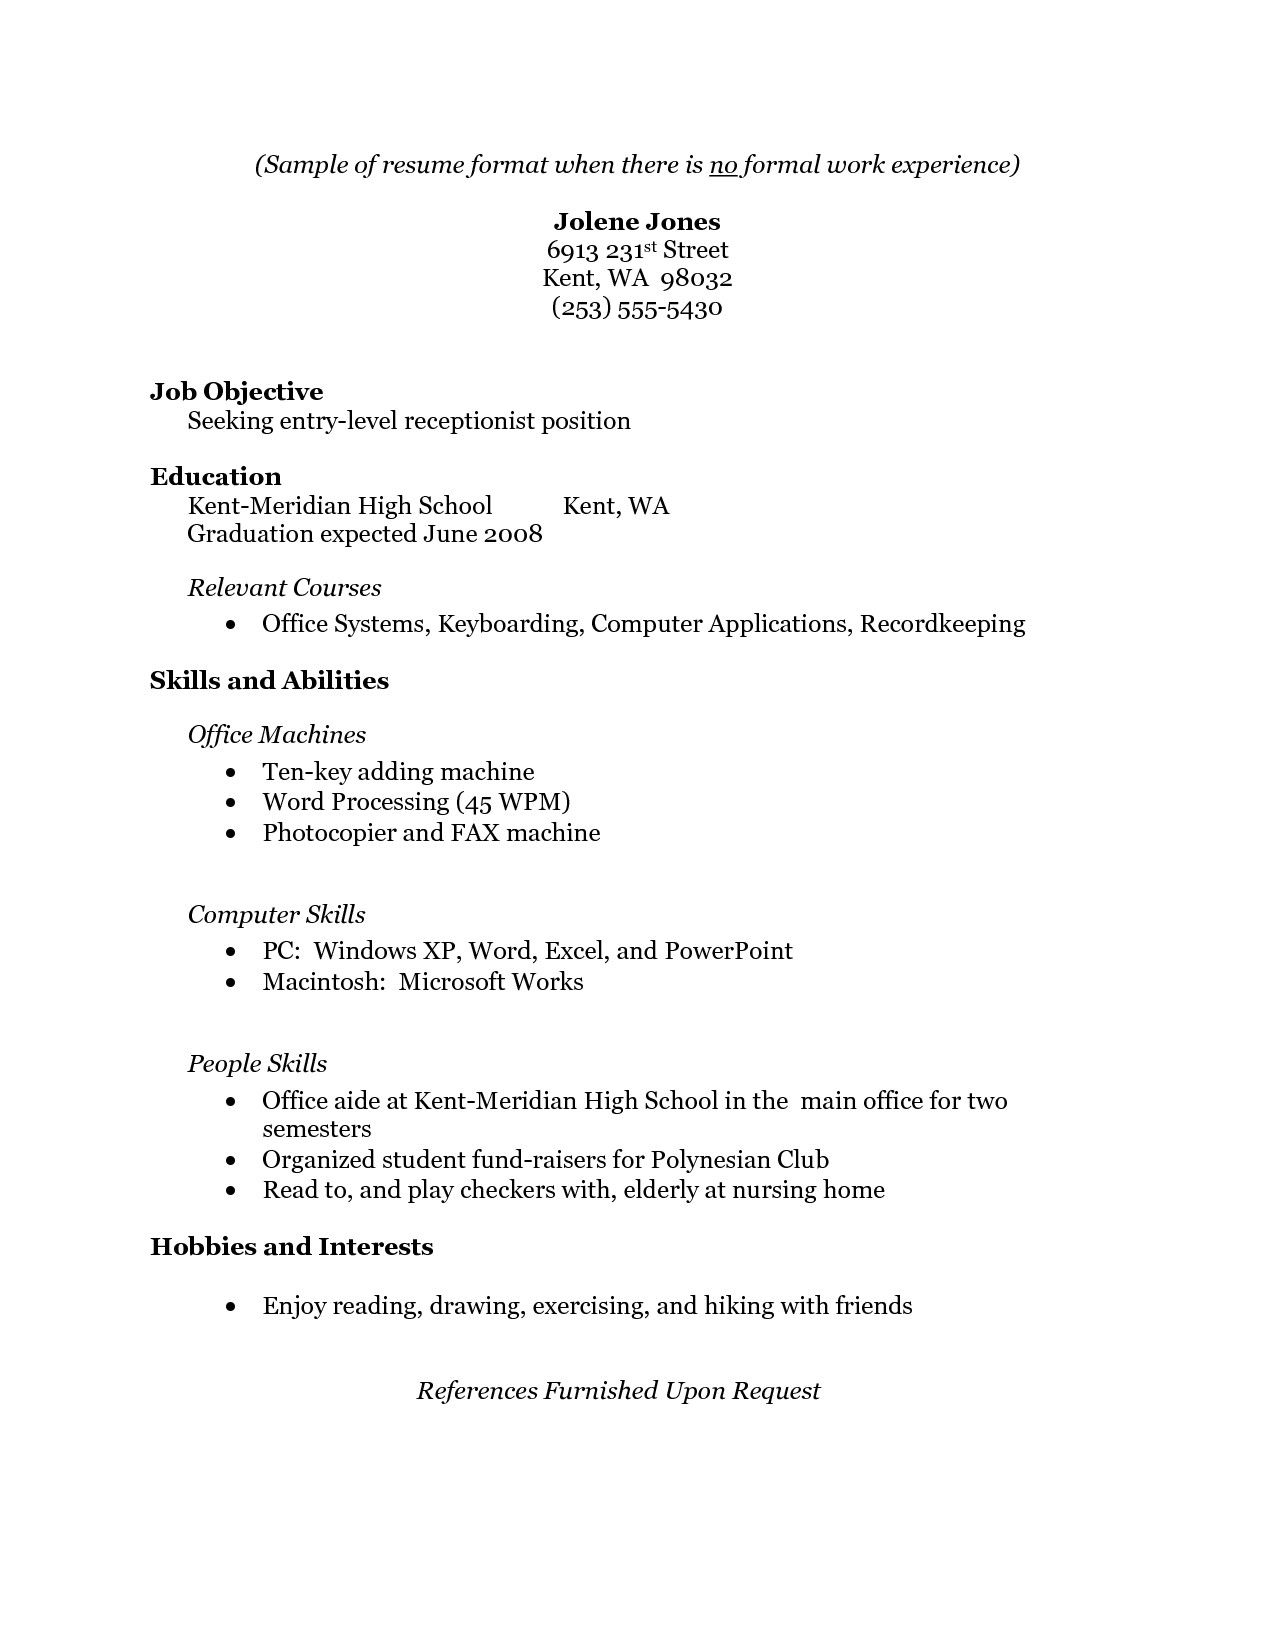 Free Resume Templates No Work Experience 3 Free Resume Templates